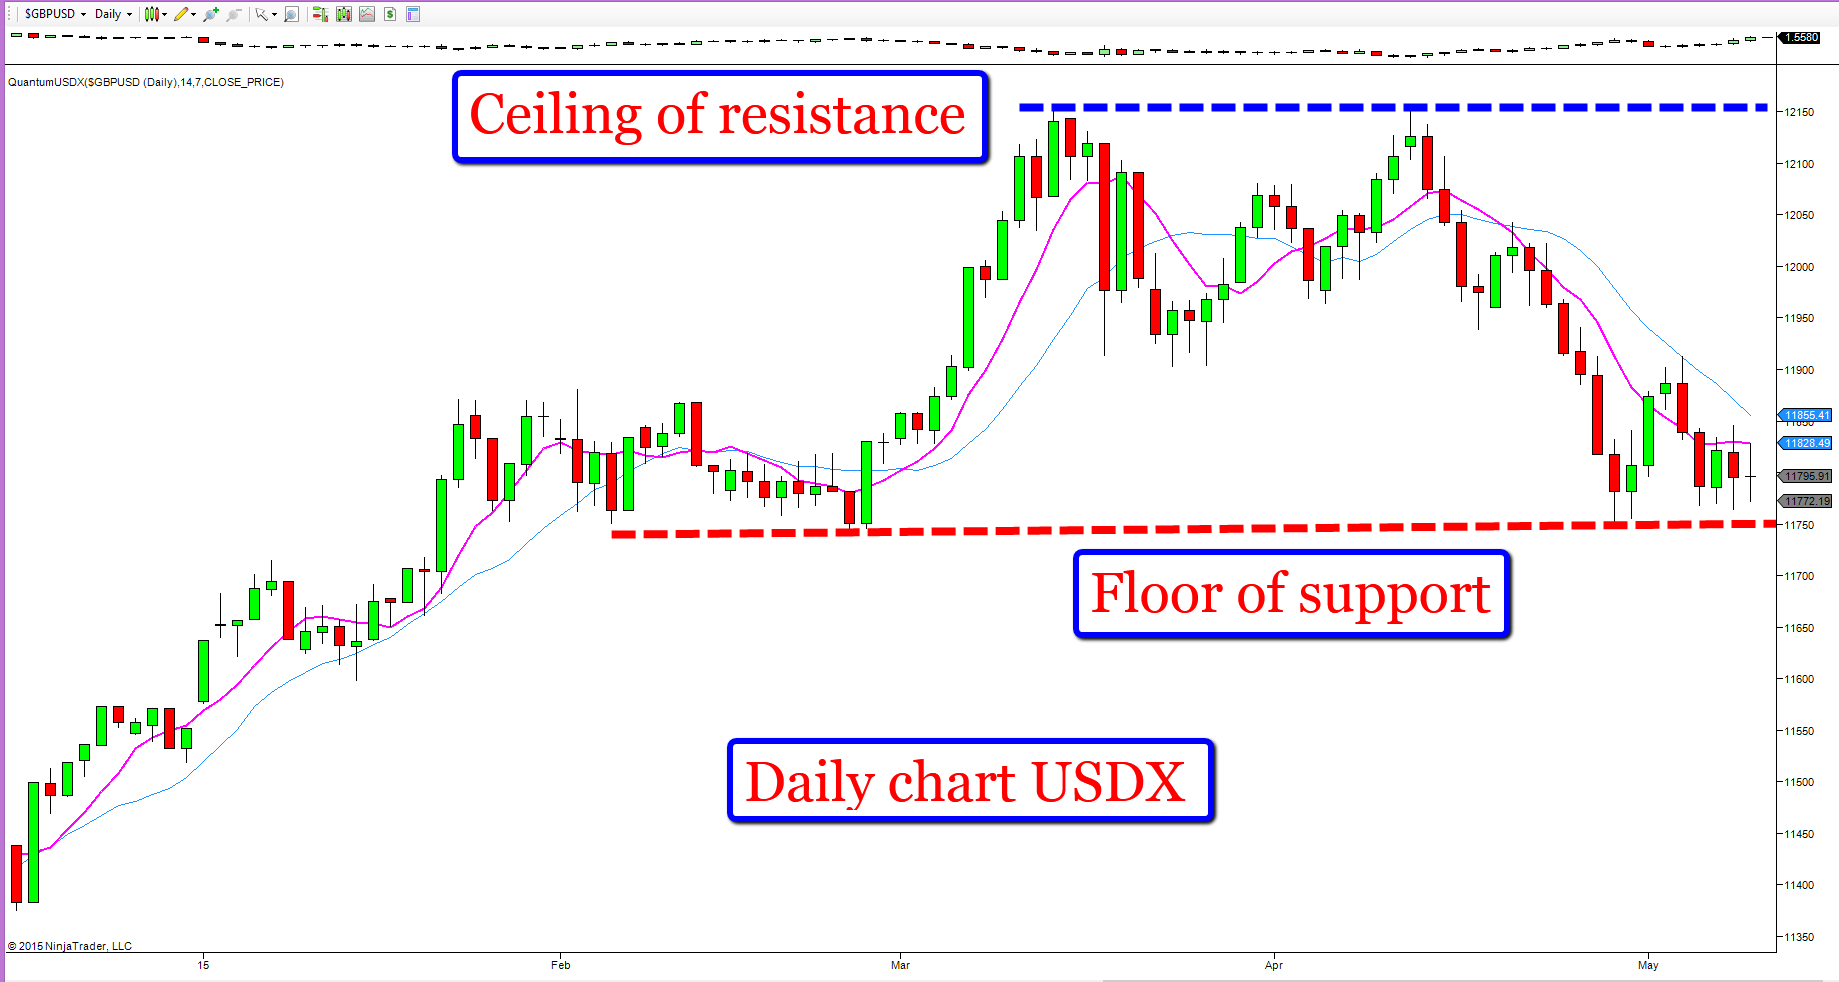 USD index - daily chart